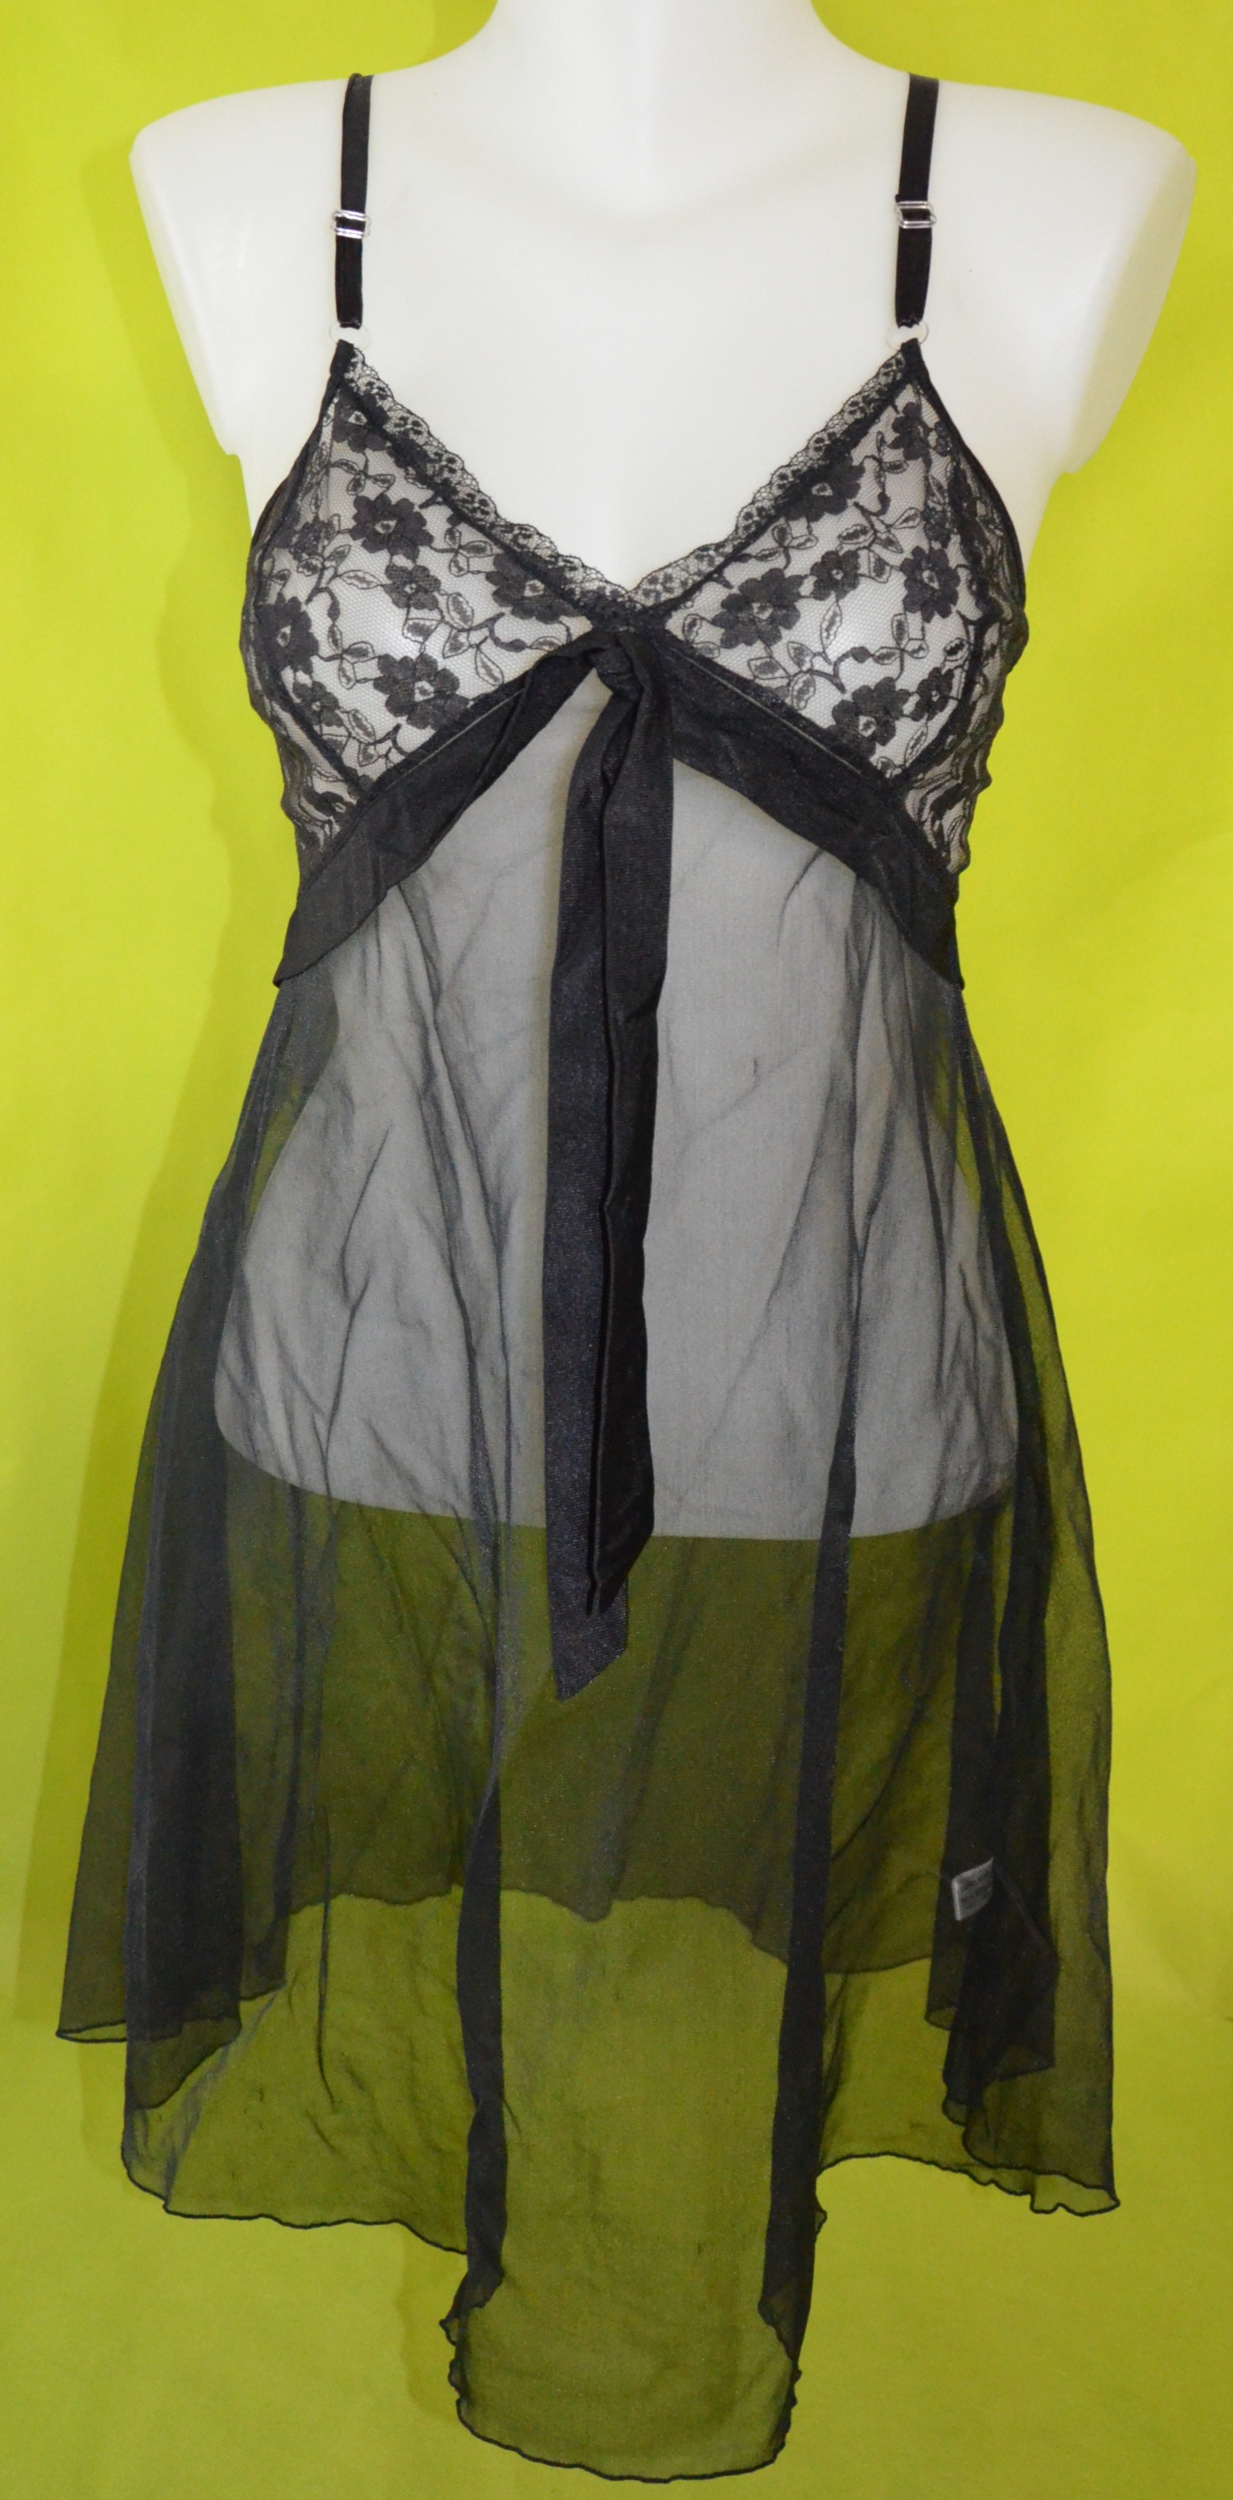 nuisette femme noire opiance taille 36-38 occasion